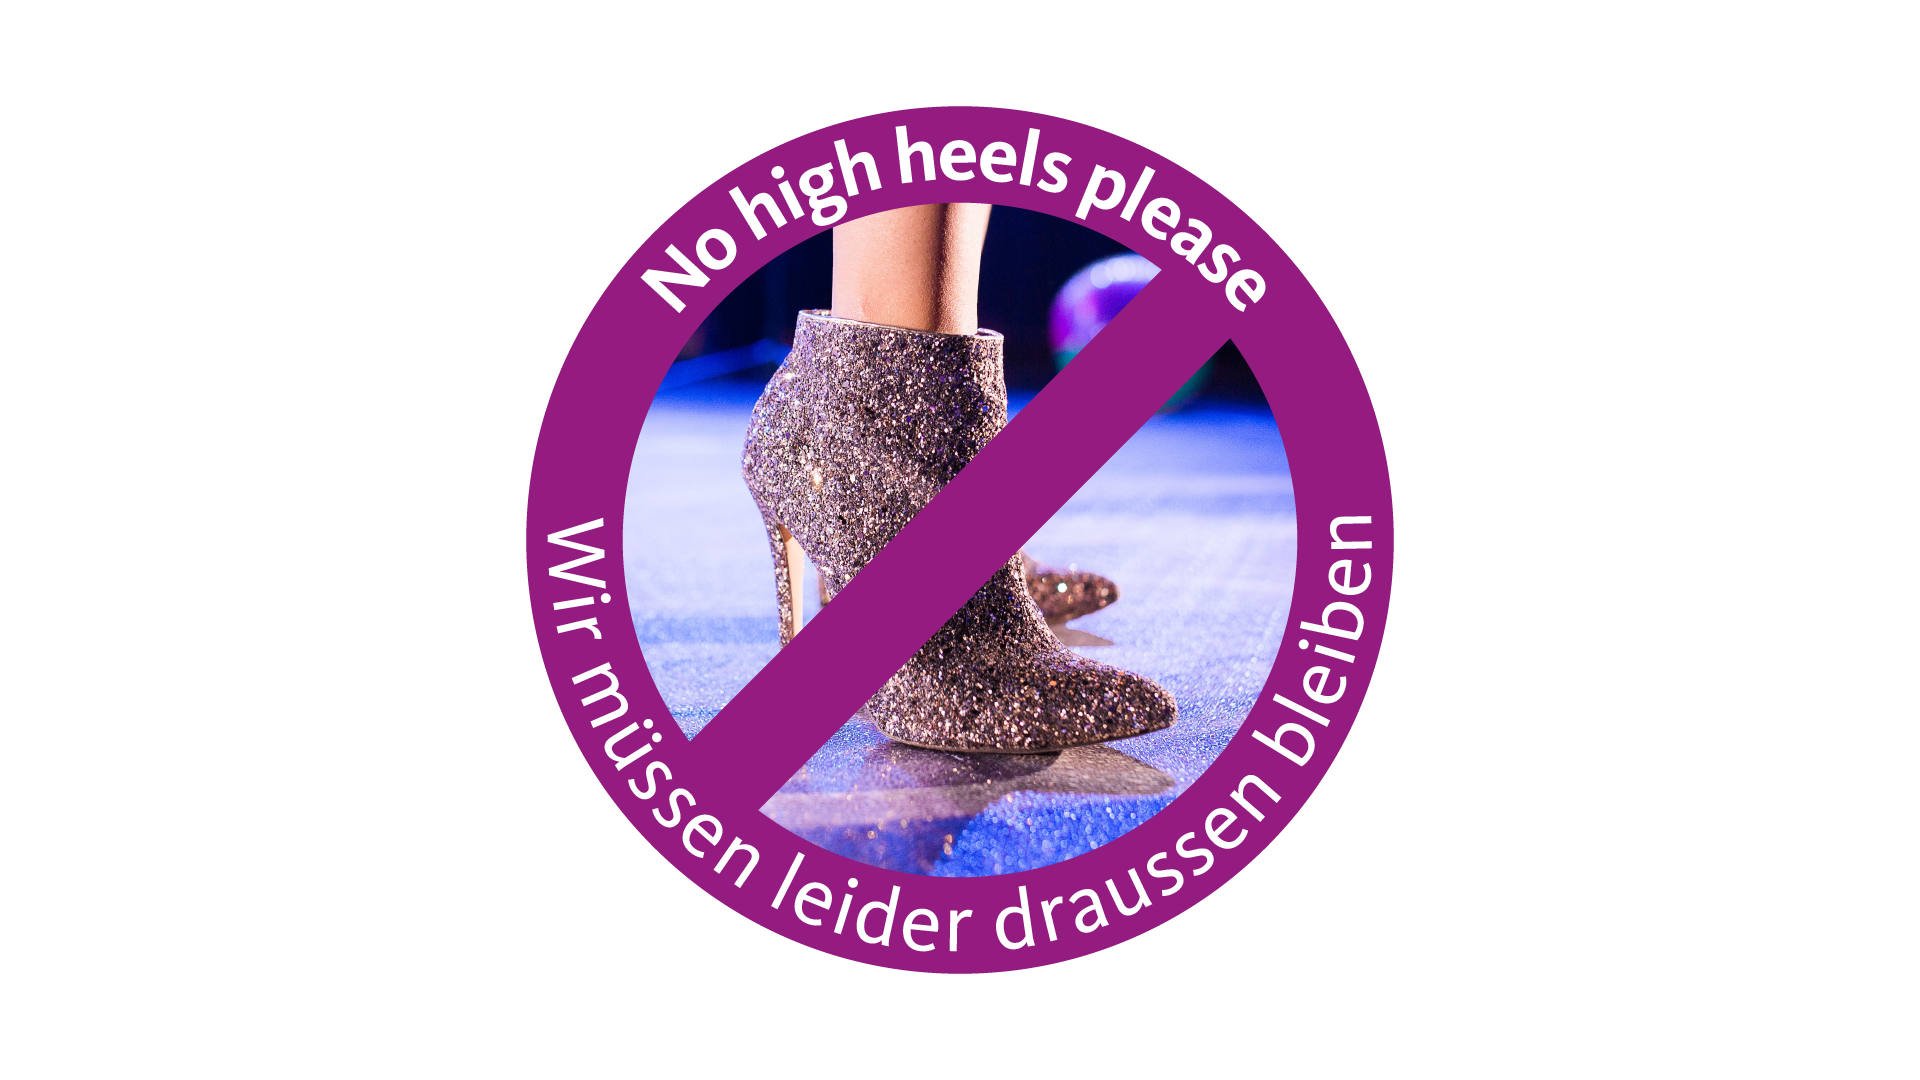 No high heels please!